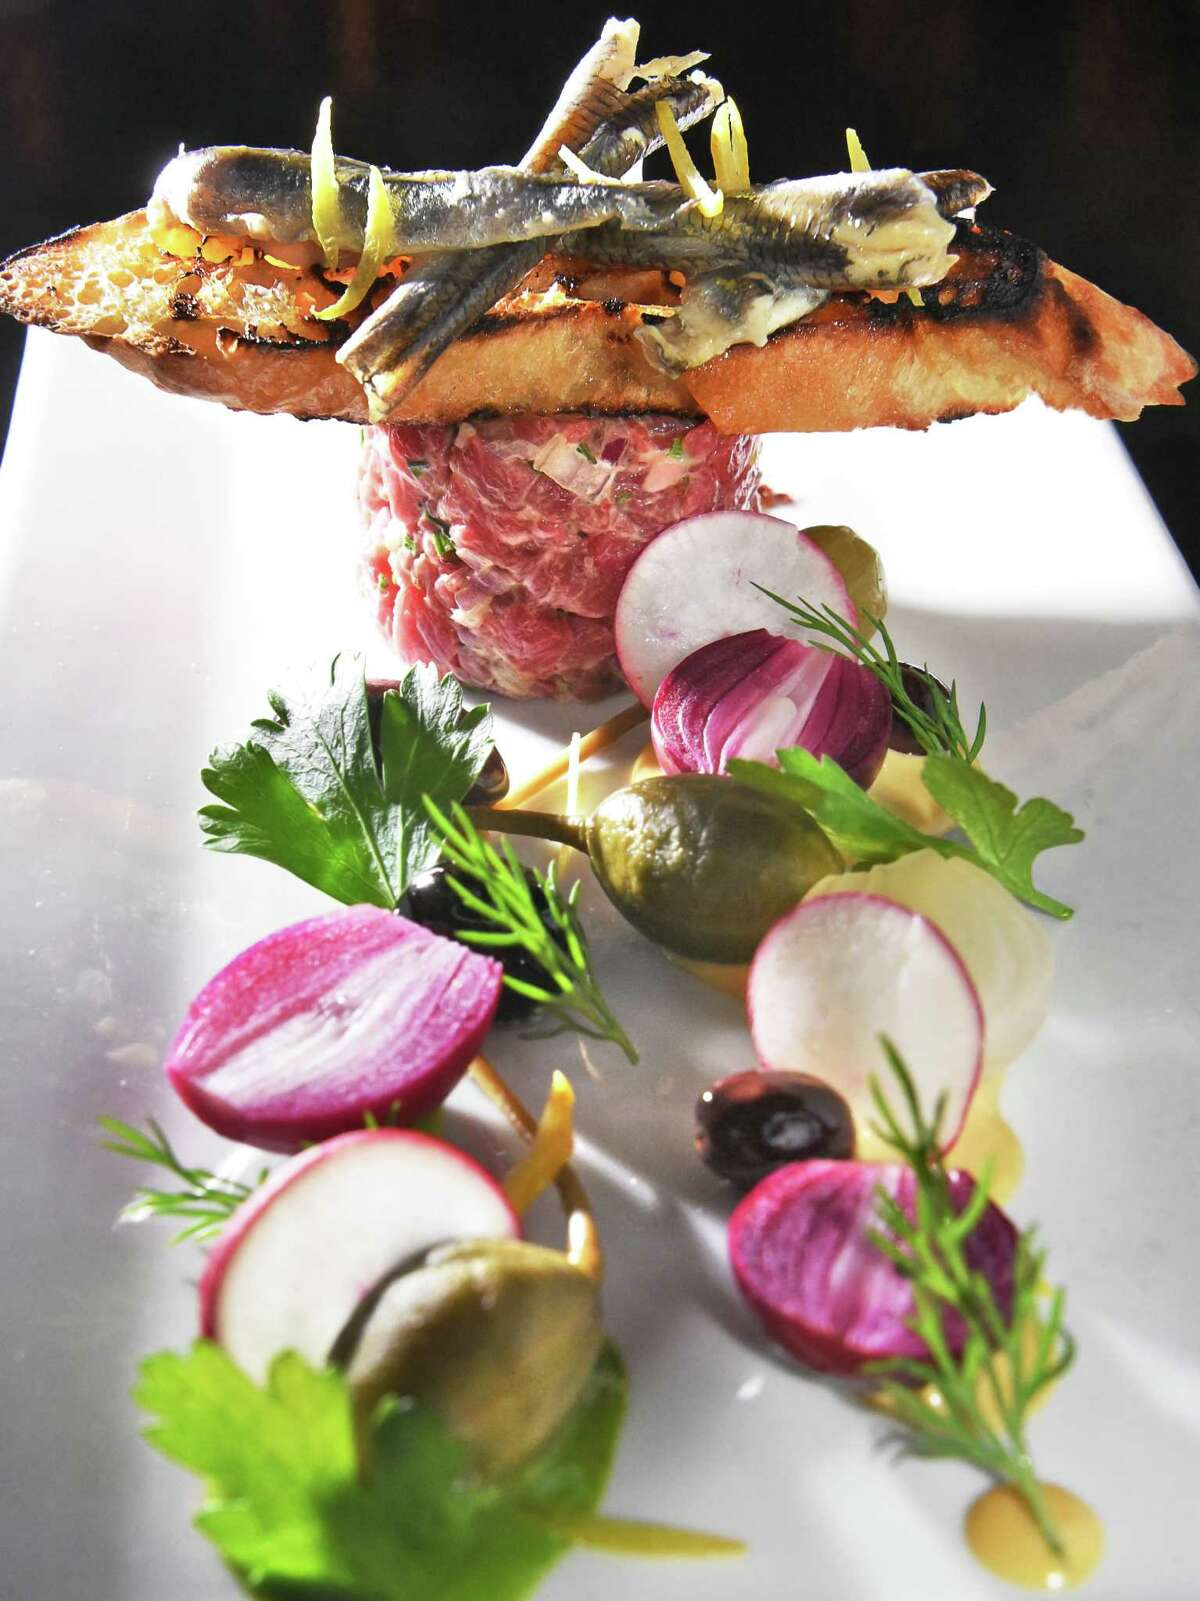 Beef tartare and boquerones at The Wine Bar on Broadway Friday March 2, 2018 in Saratoga Springs, NY. (John Carl D'Annibale/Times Union)